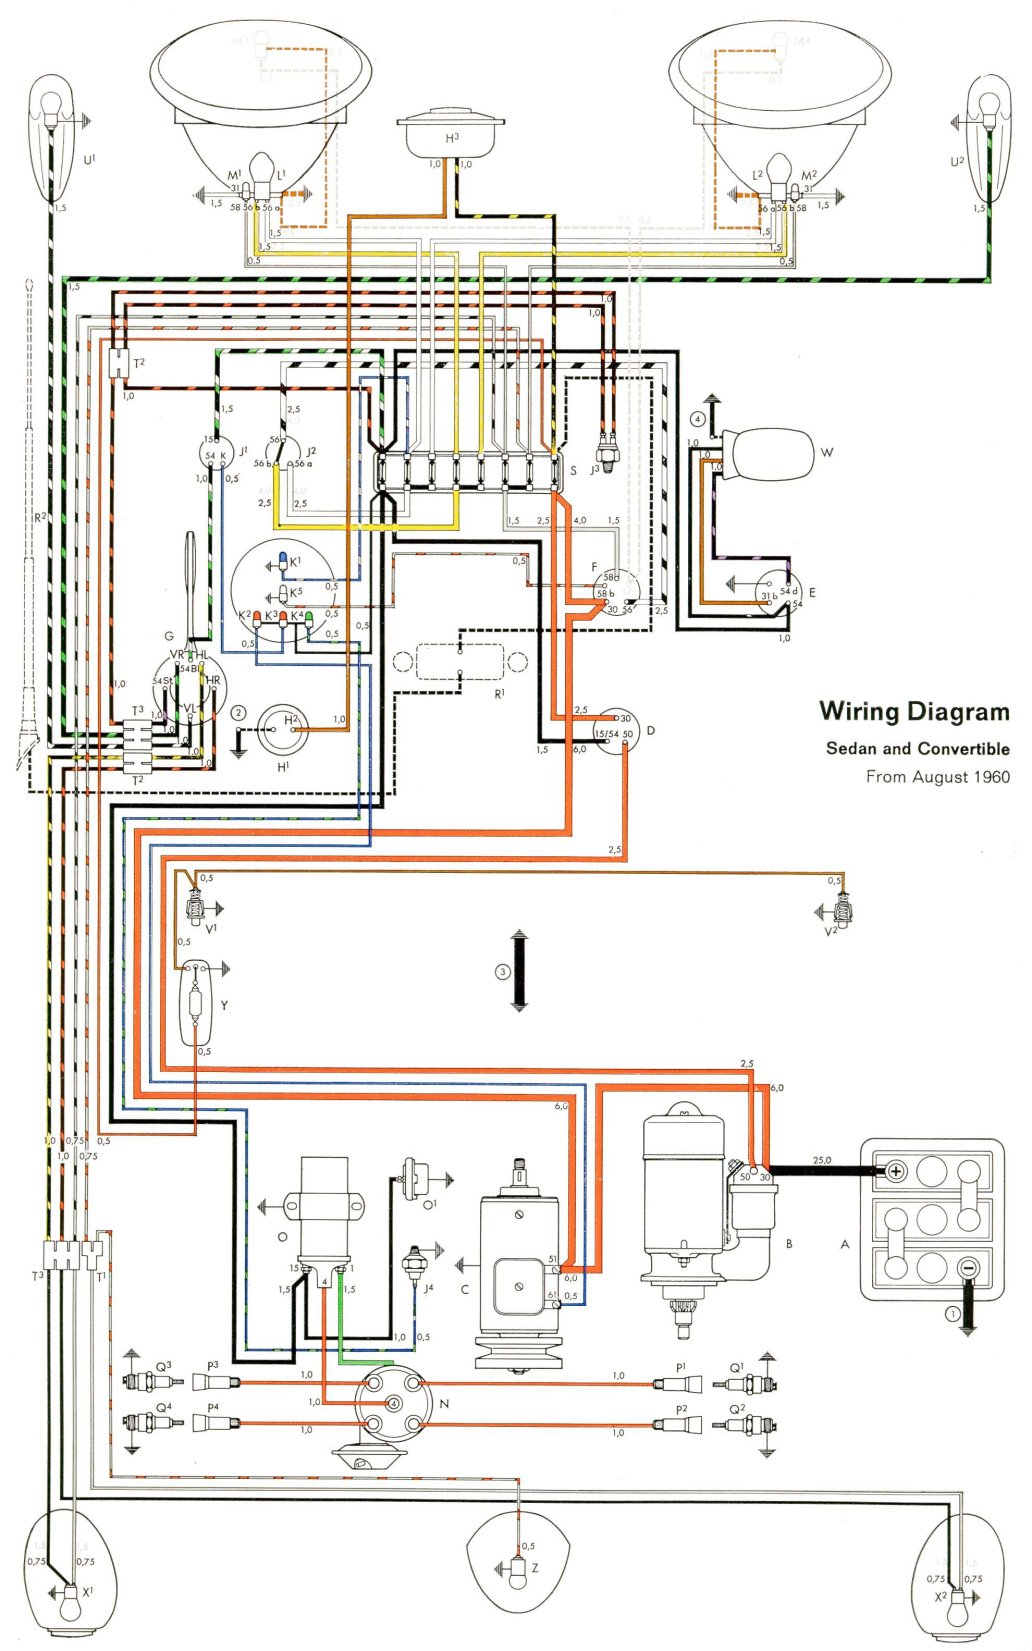 bug_61 1961 beetle wiring diagram thegoldenbug com 1971 vw beetle wiring diagram at panicattacktreatment.co